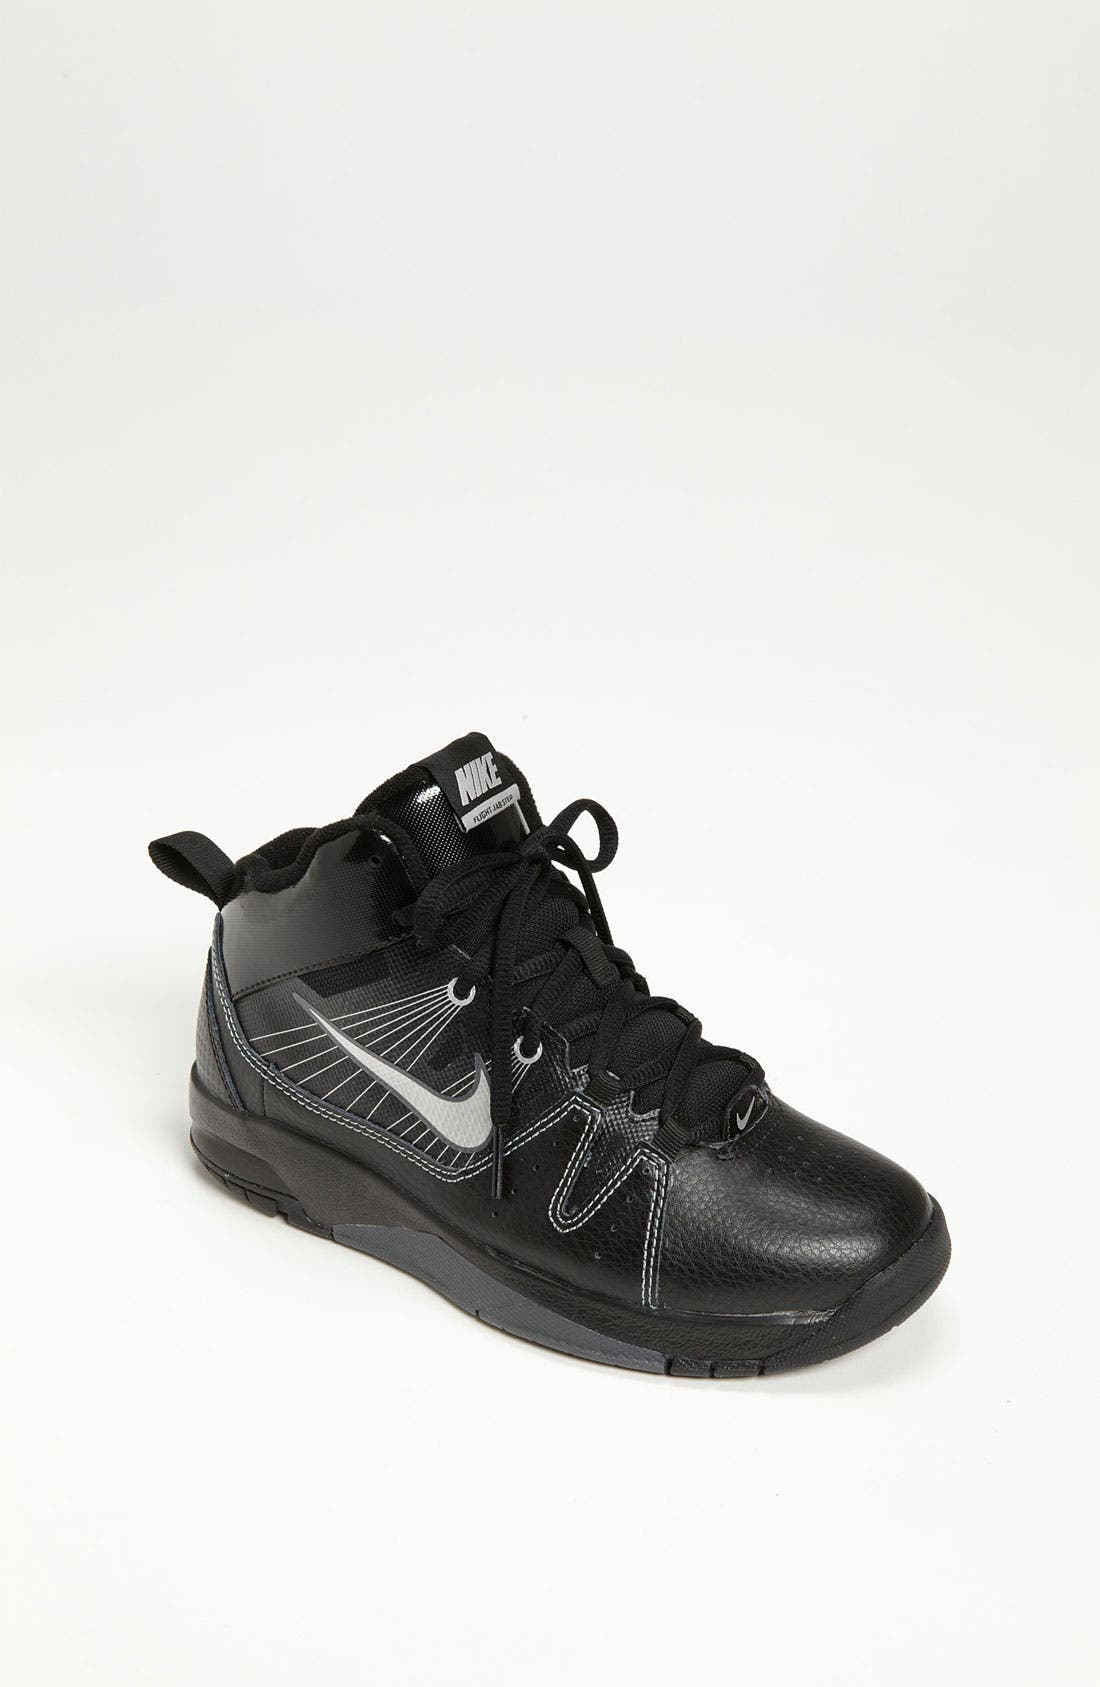 Alternate Image 1 Selected - Nike 'Flight Jab Step' Basketball Shoe (Toddler, Little Kid & Big Kid)